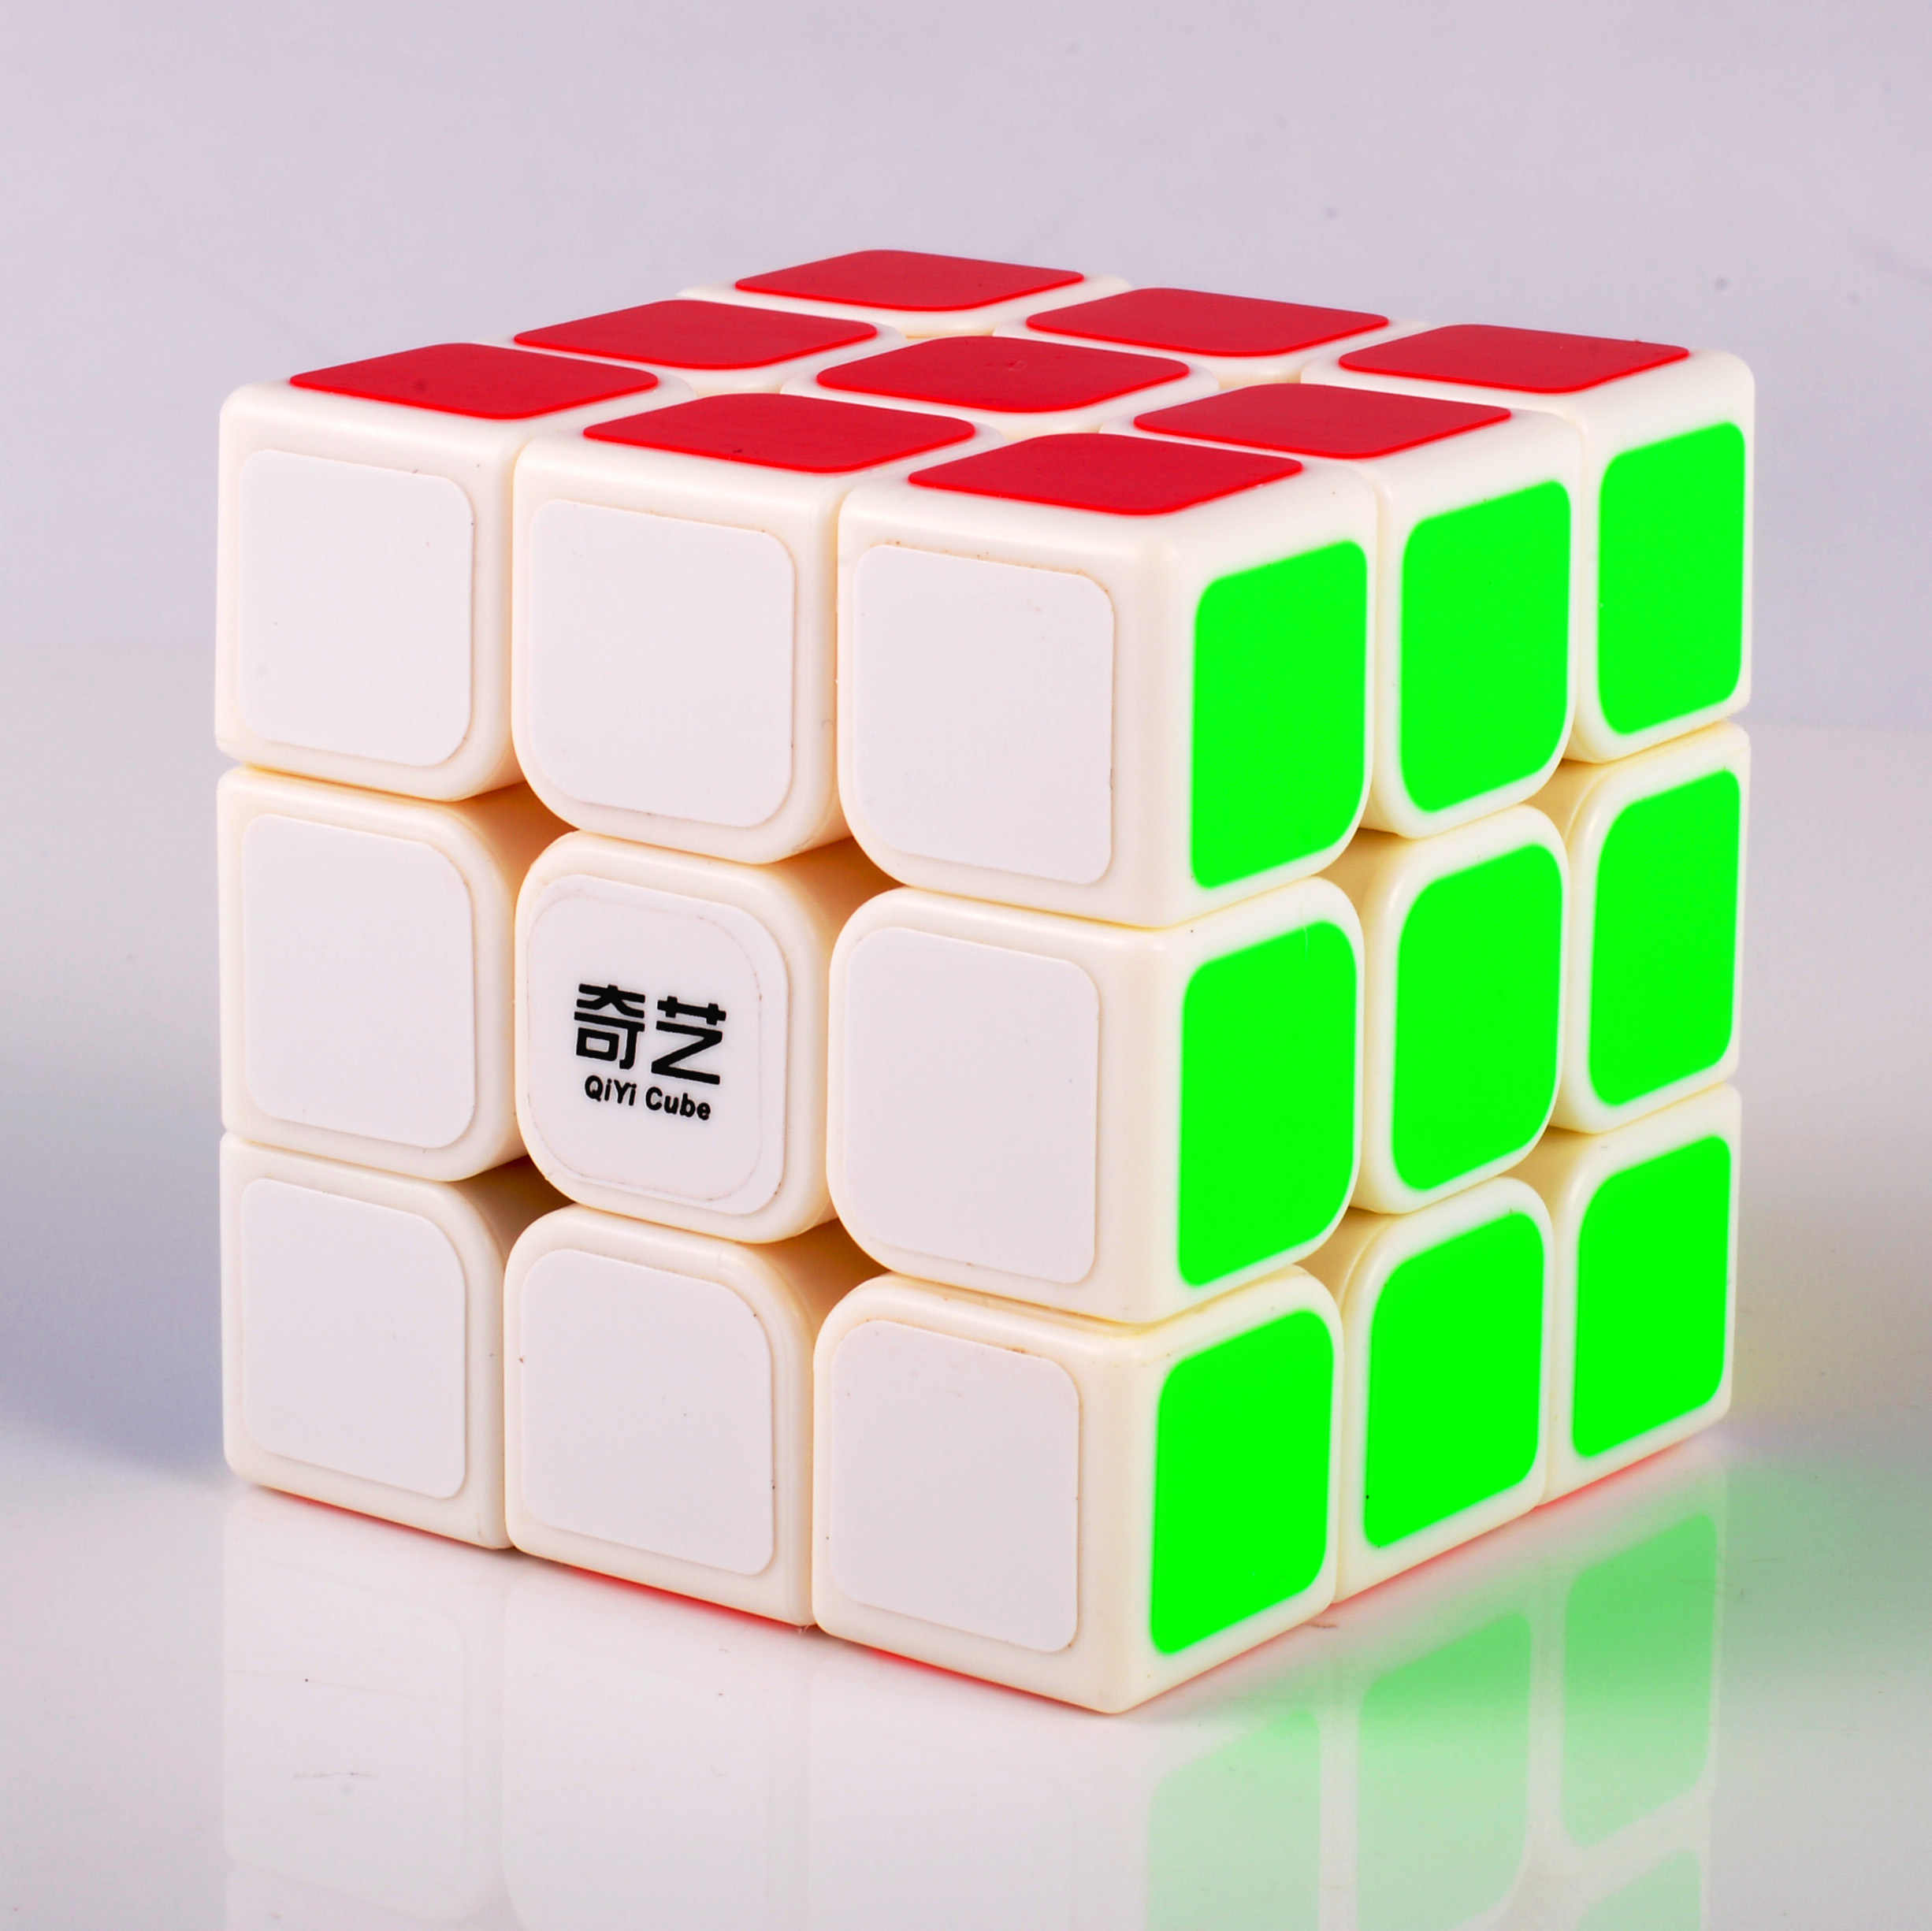 Qiyi Cube Magico Cubes Professional 3x3x3 Cubo Sticker Speed Twist Puzzle  Educational Toys For Children Gift Rubiking Cube